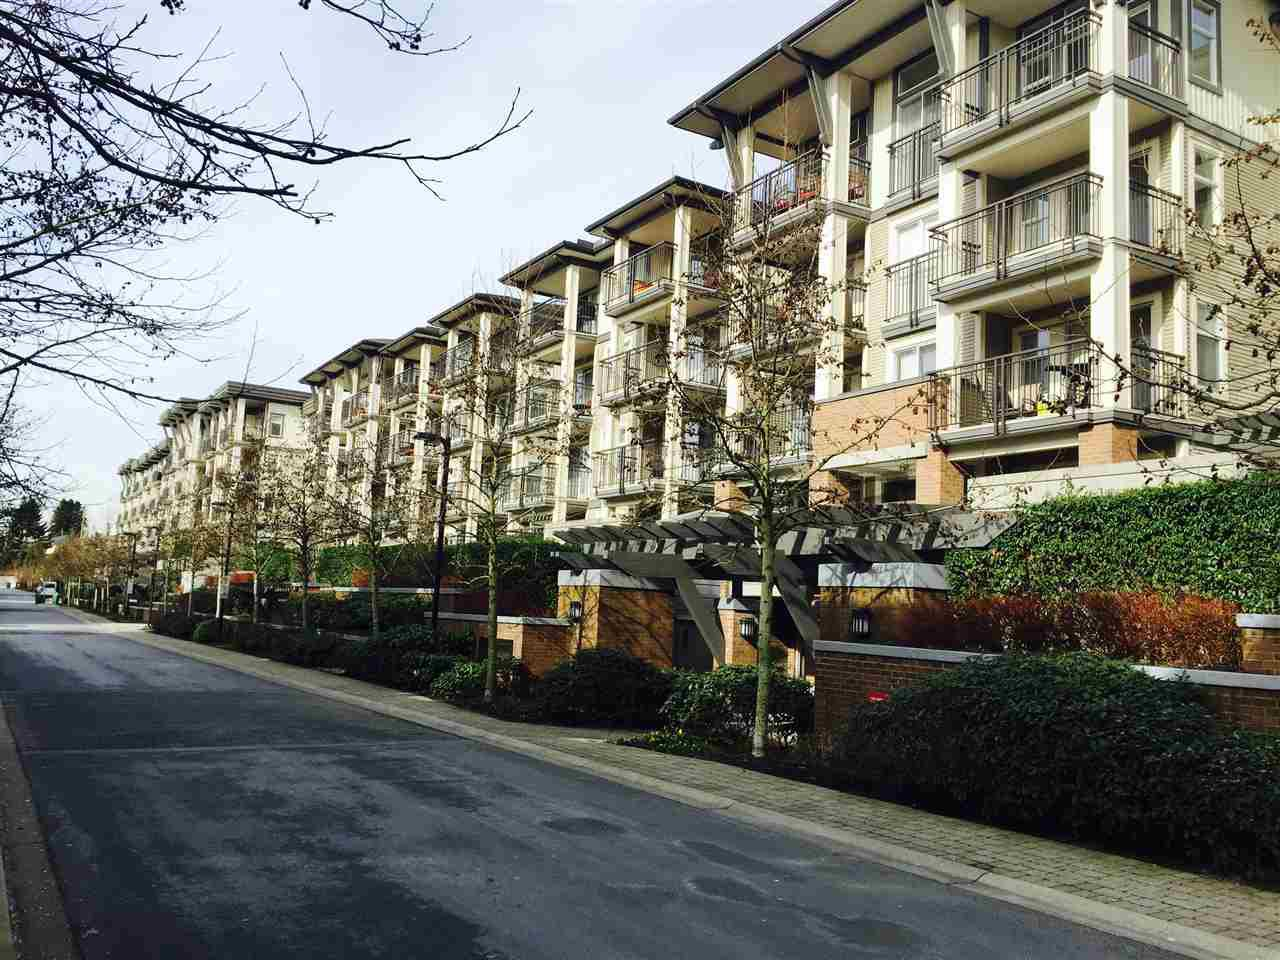 Main Photo: 419 4833 BRENTWOOD Drive in Burnaby: Brentwood Park Condo for sale (Burnaby North)  : MLS®# R2077465